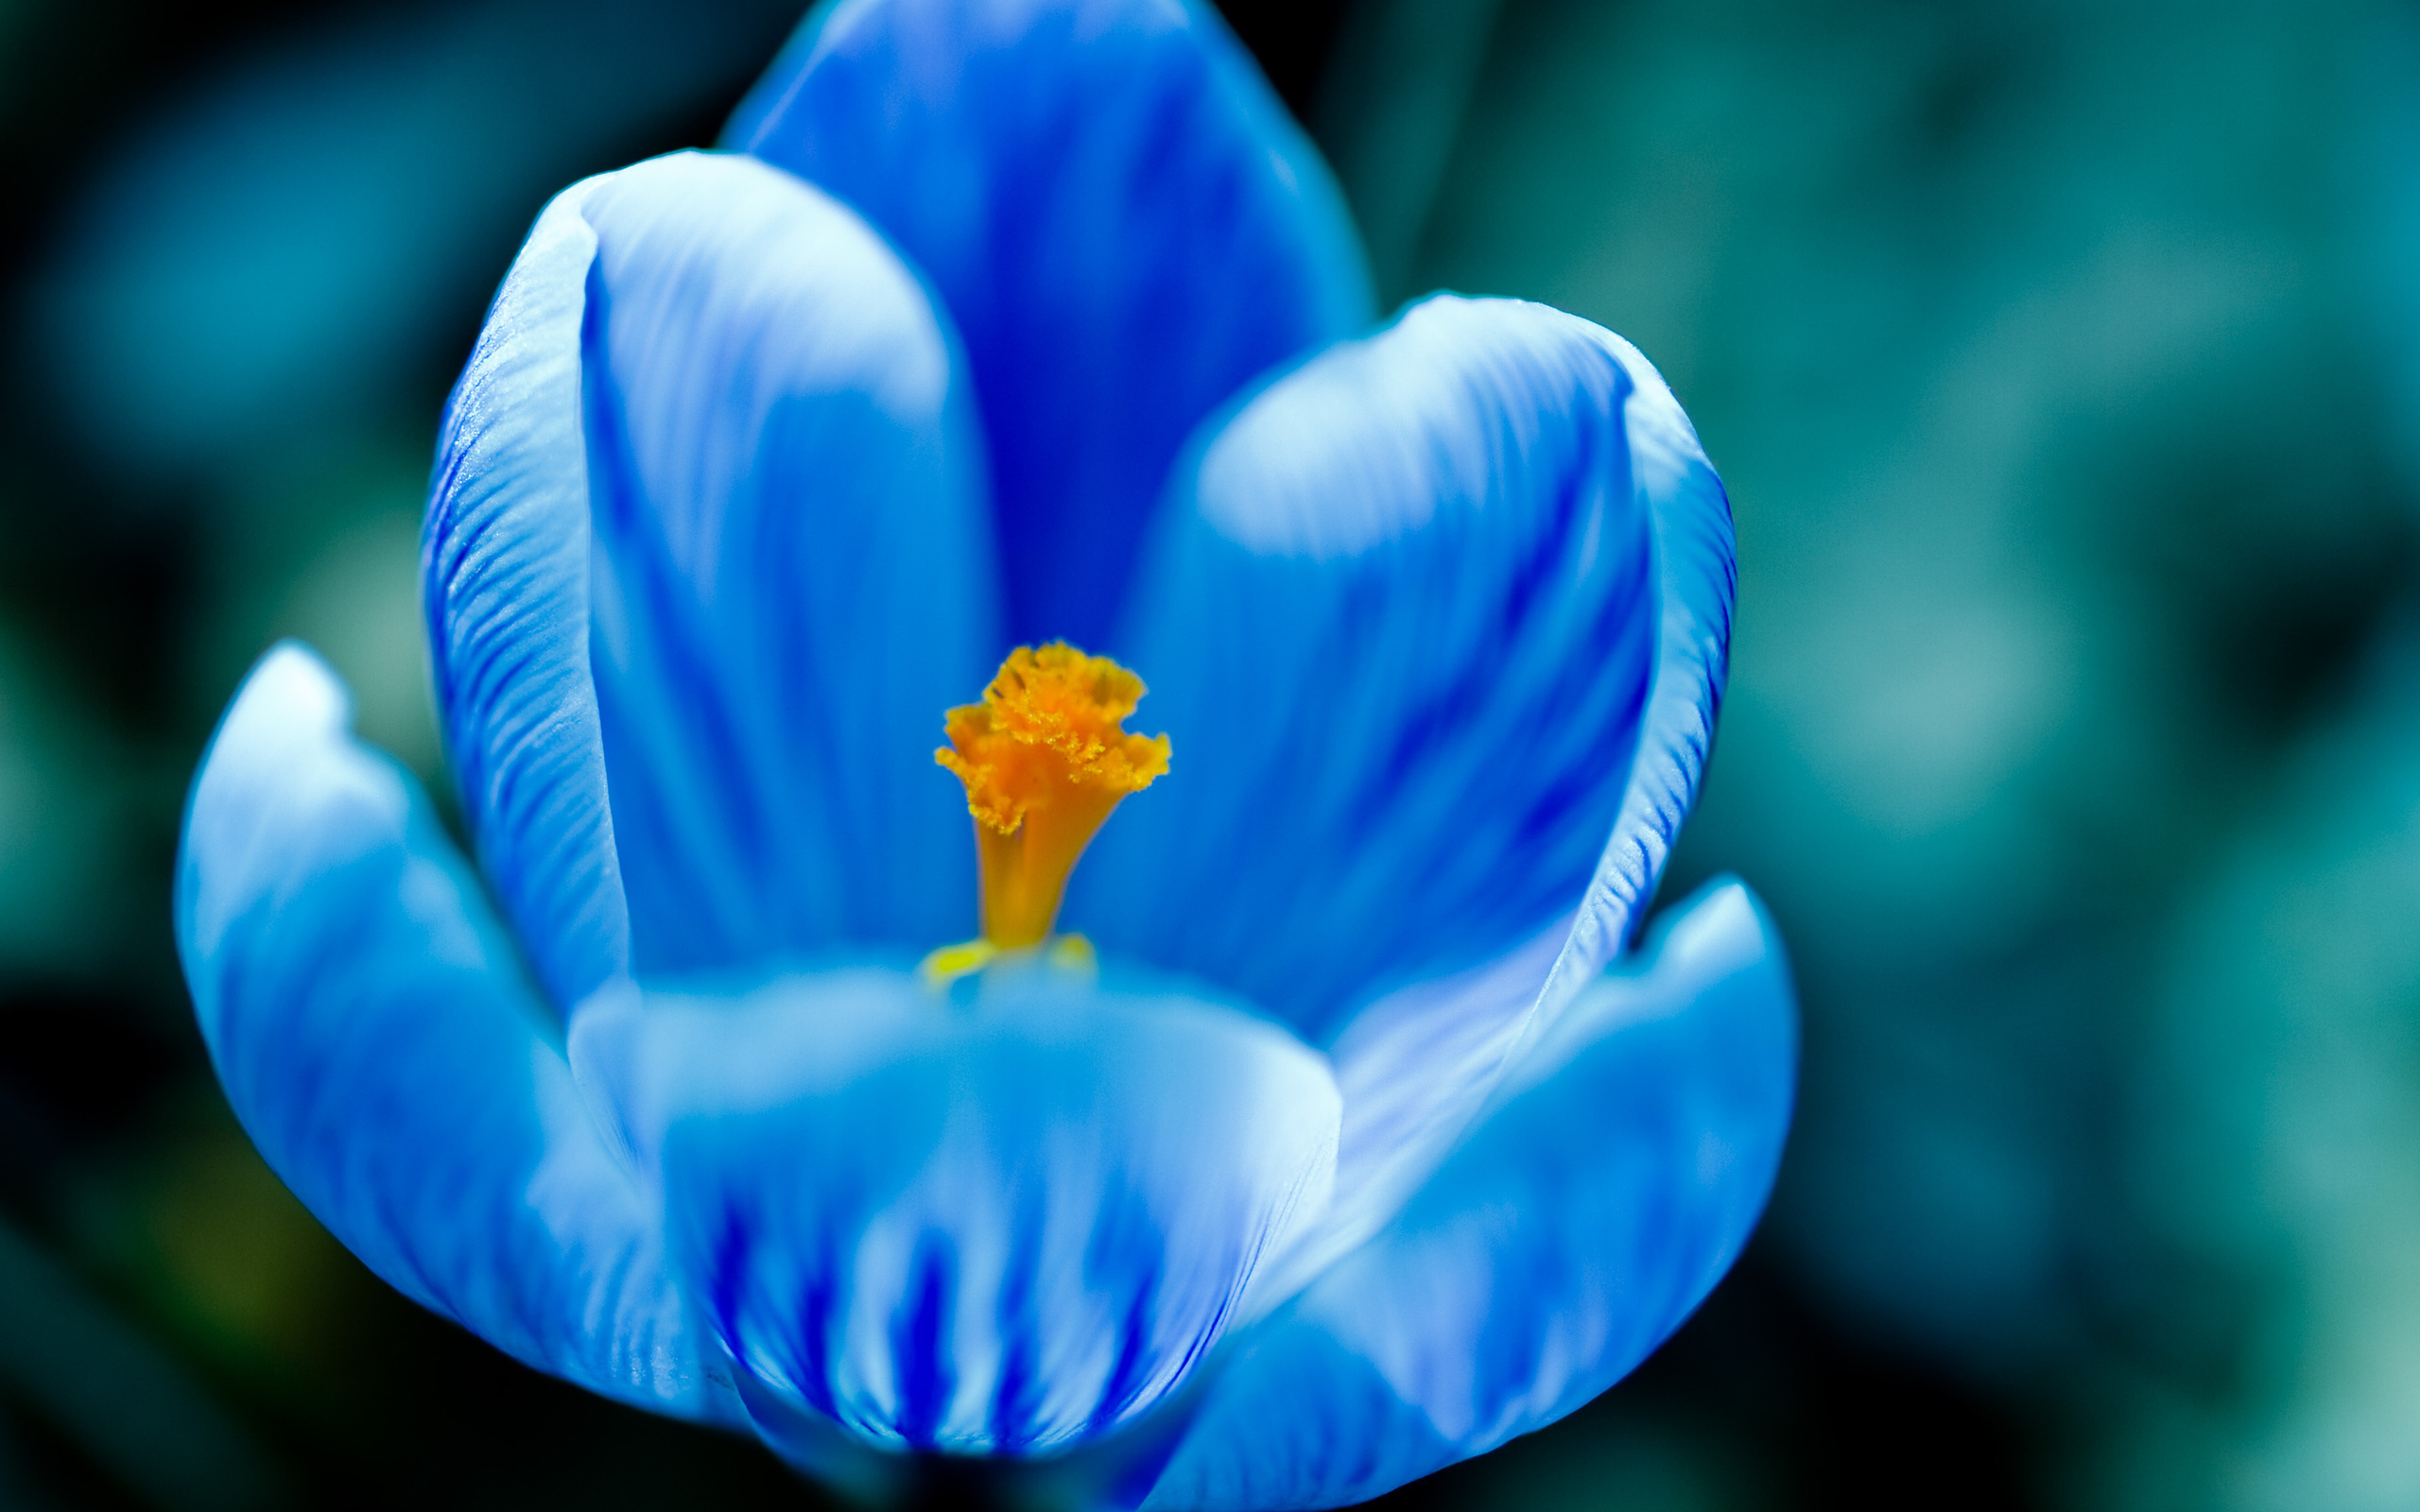 Blue Crocus Flower Wallpaper Beautiful Most Flowers Bloom Blossom